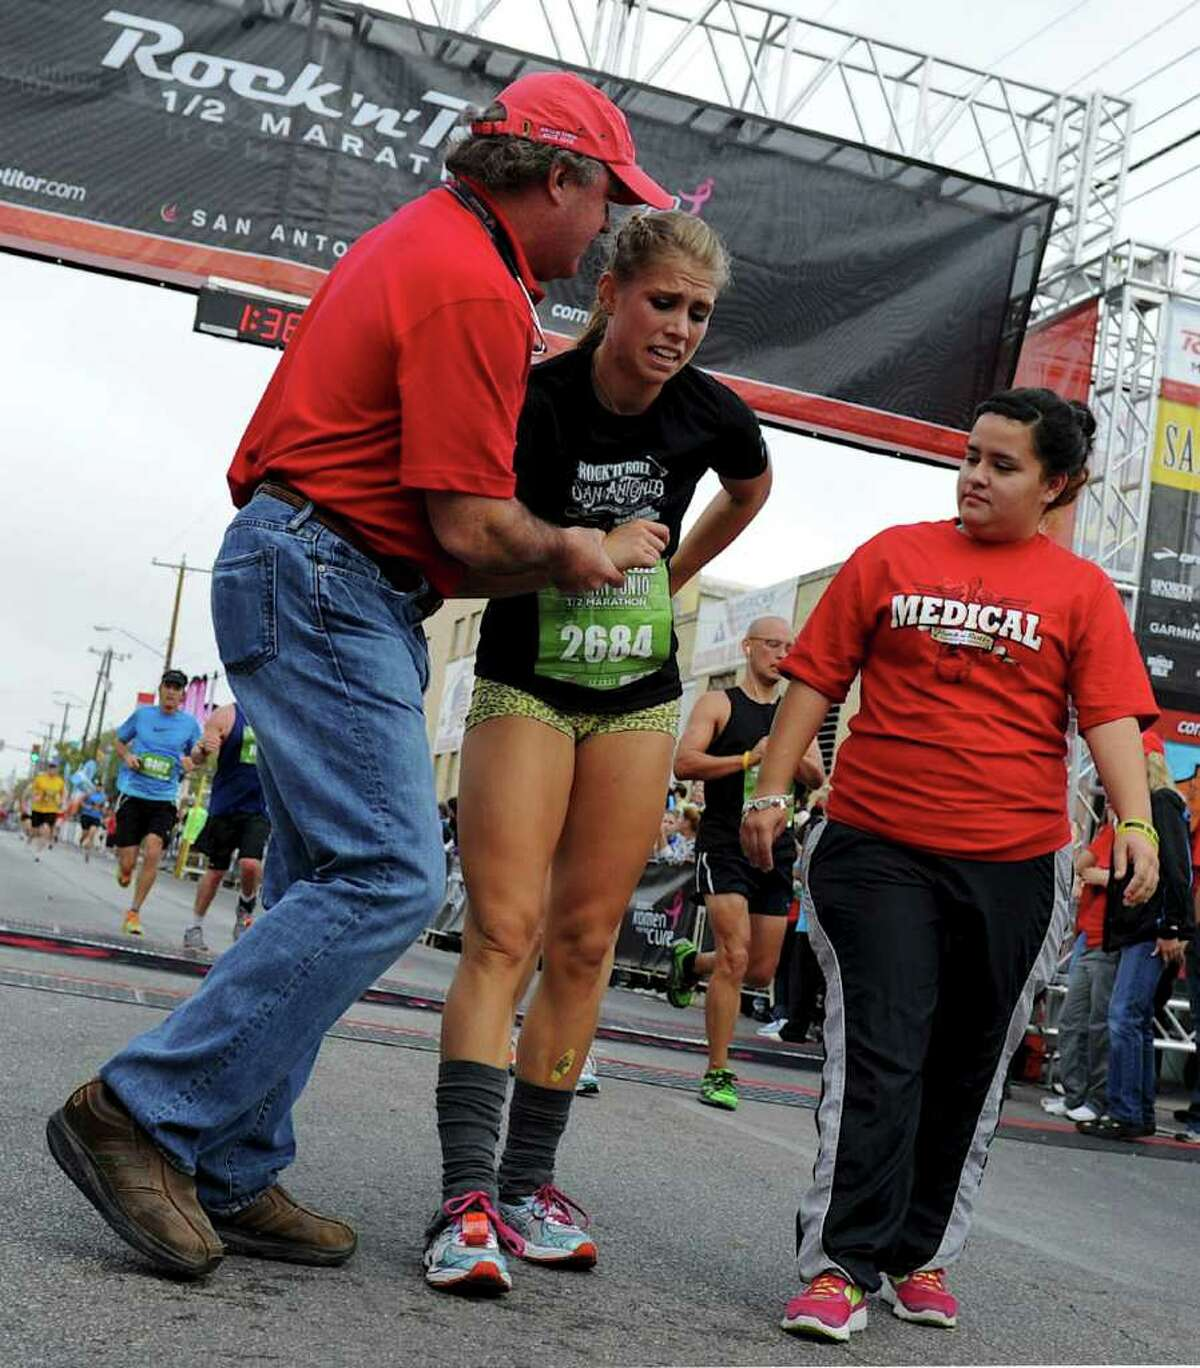 A runner receives medical attention after finishing the half marathon during the 2011 San Antonio Rock 'n' Roll Marathon and Half Marathon in San Antonio, Texas on November 13, 2011. John Albright / Special to the Express-News.